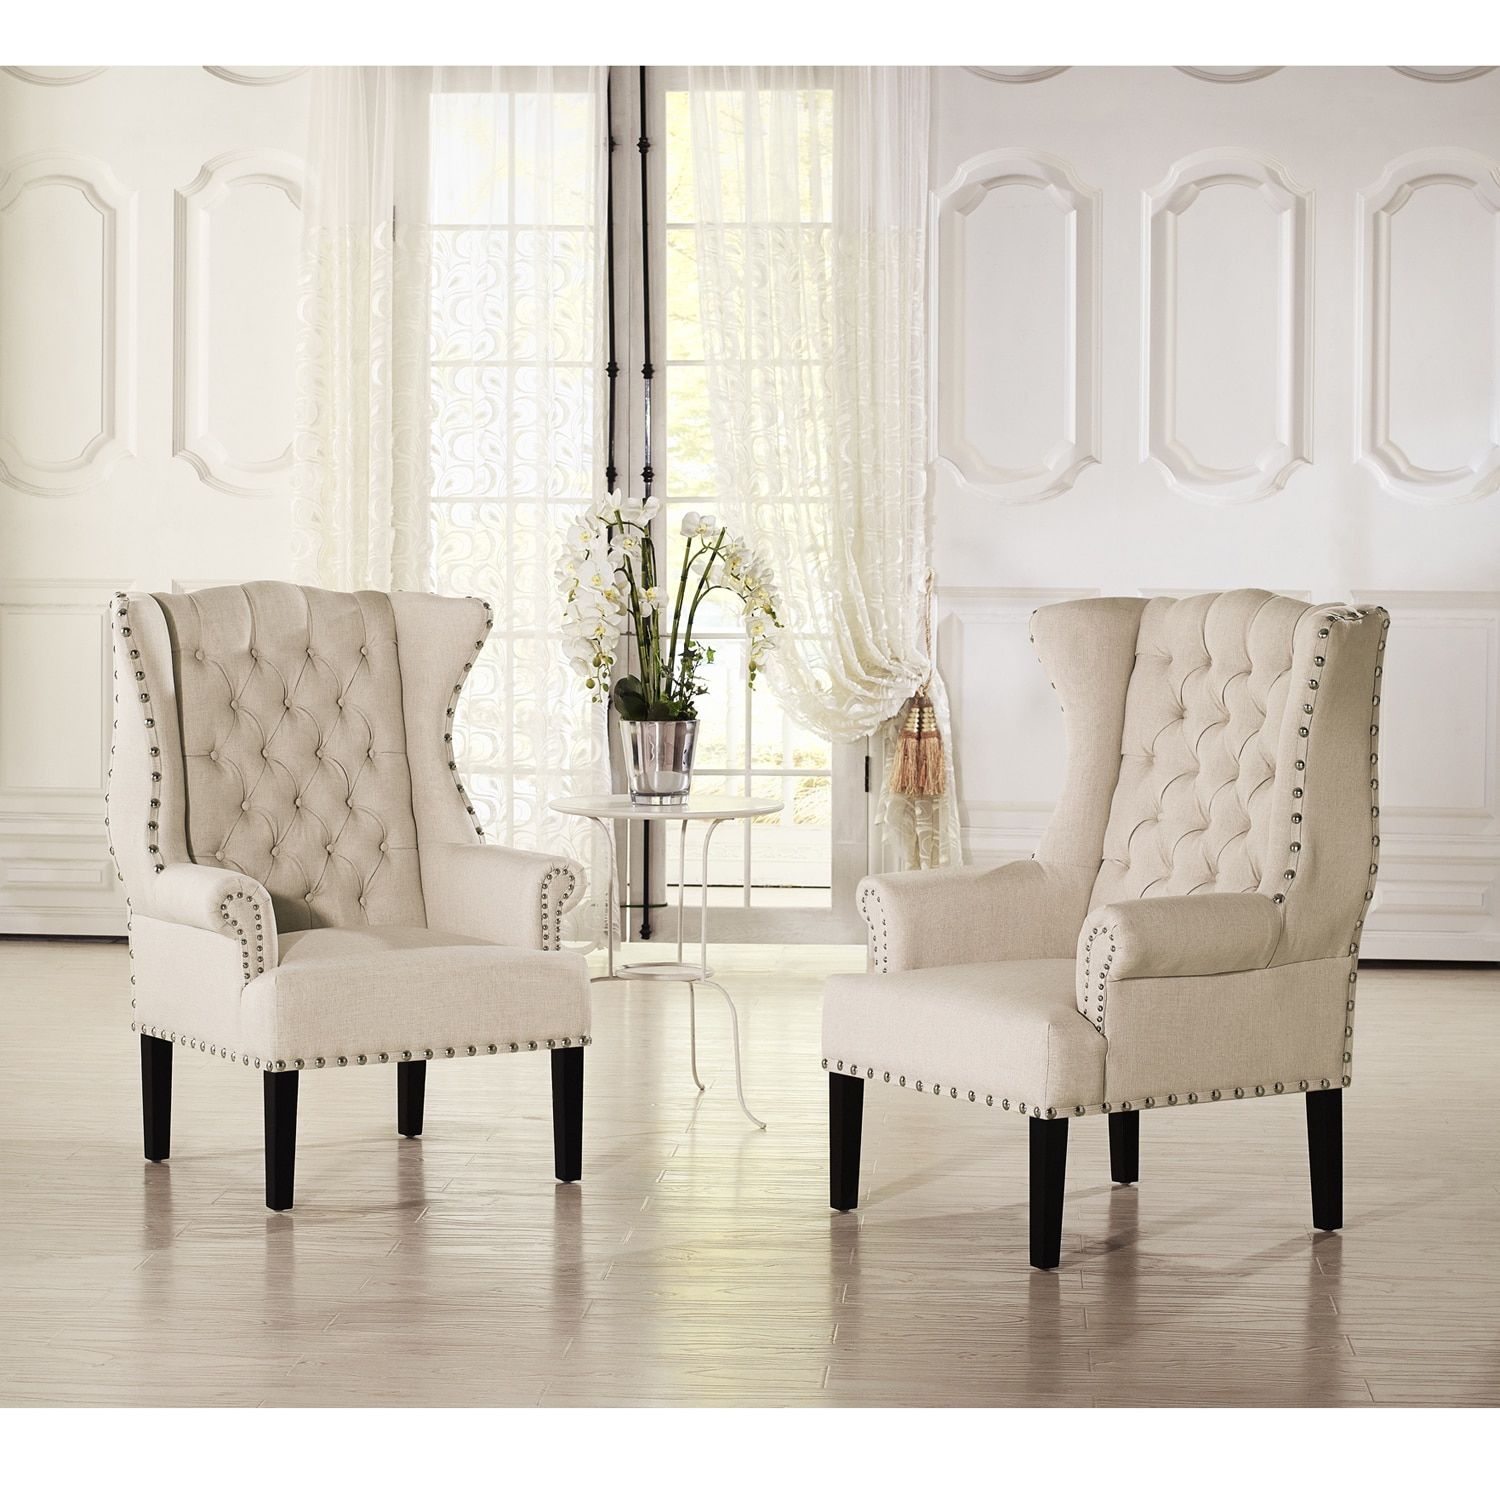 Accent Chairs Living Room Chairs Create An Inviting Atmosphere Endearing High Back Living Room Chair Design Ideas